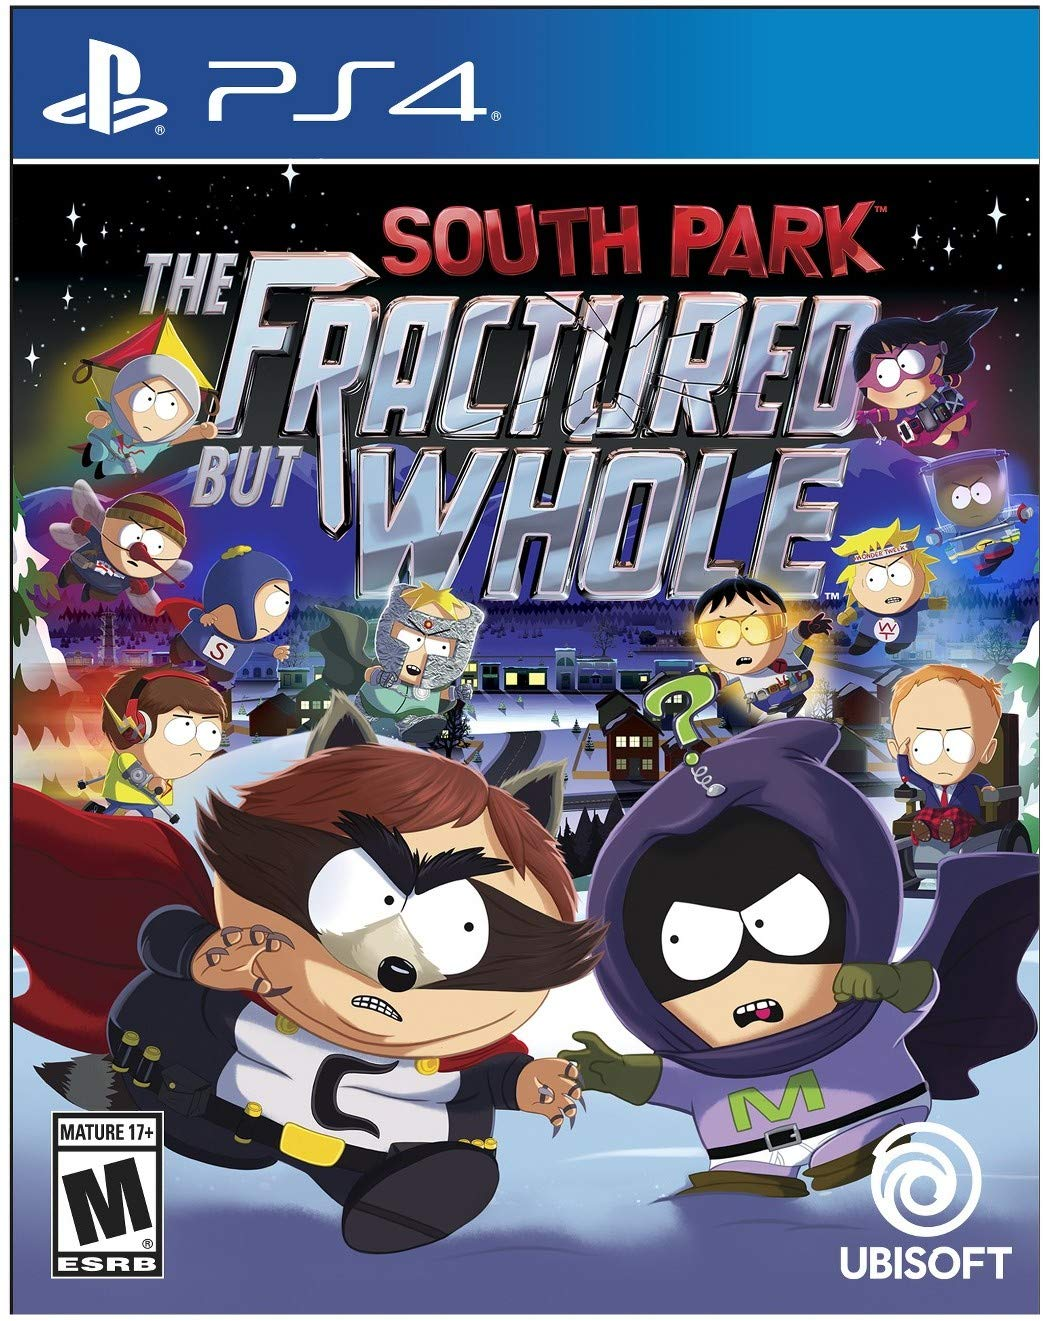 PS4 South Park The Fractured But Whole Video Game